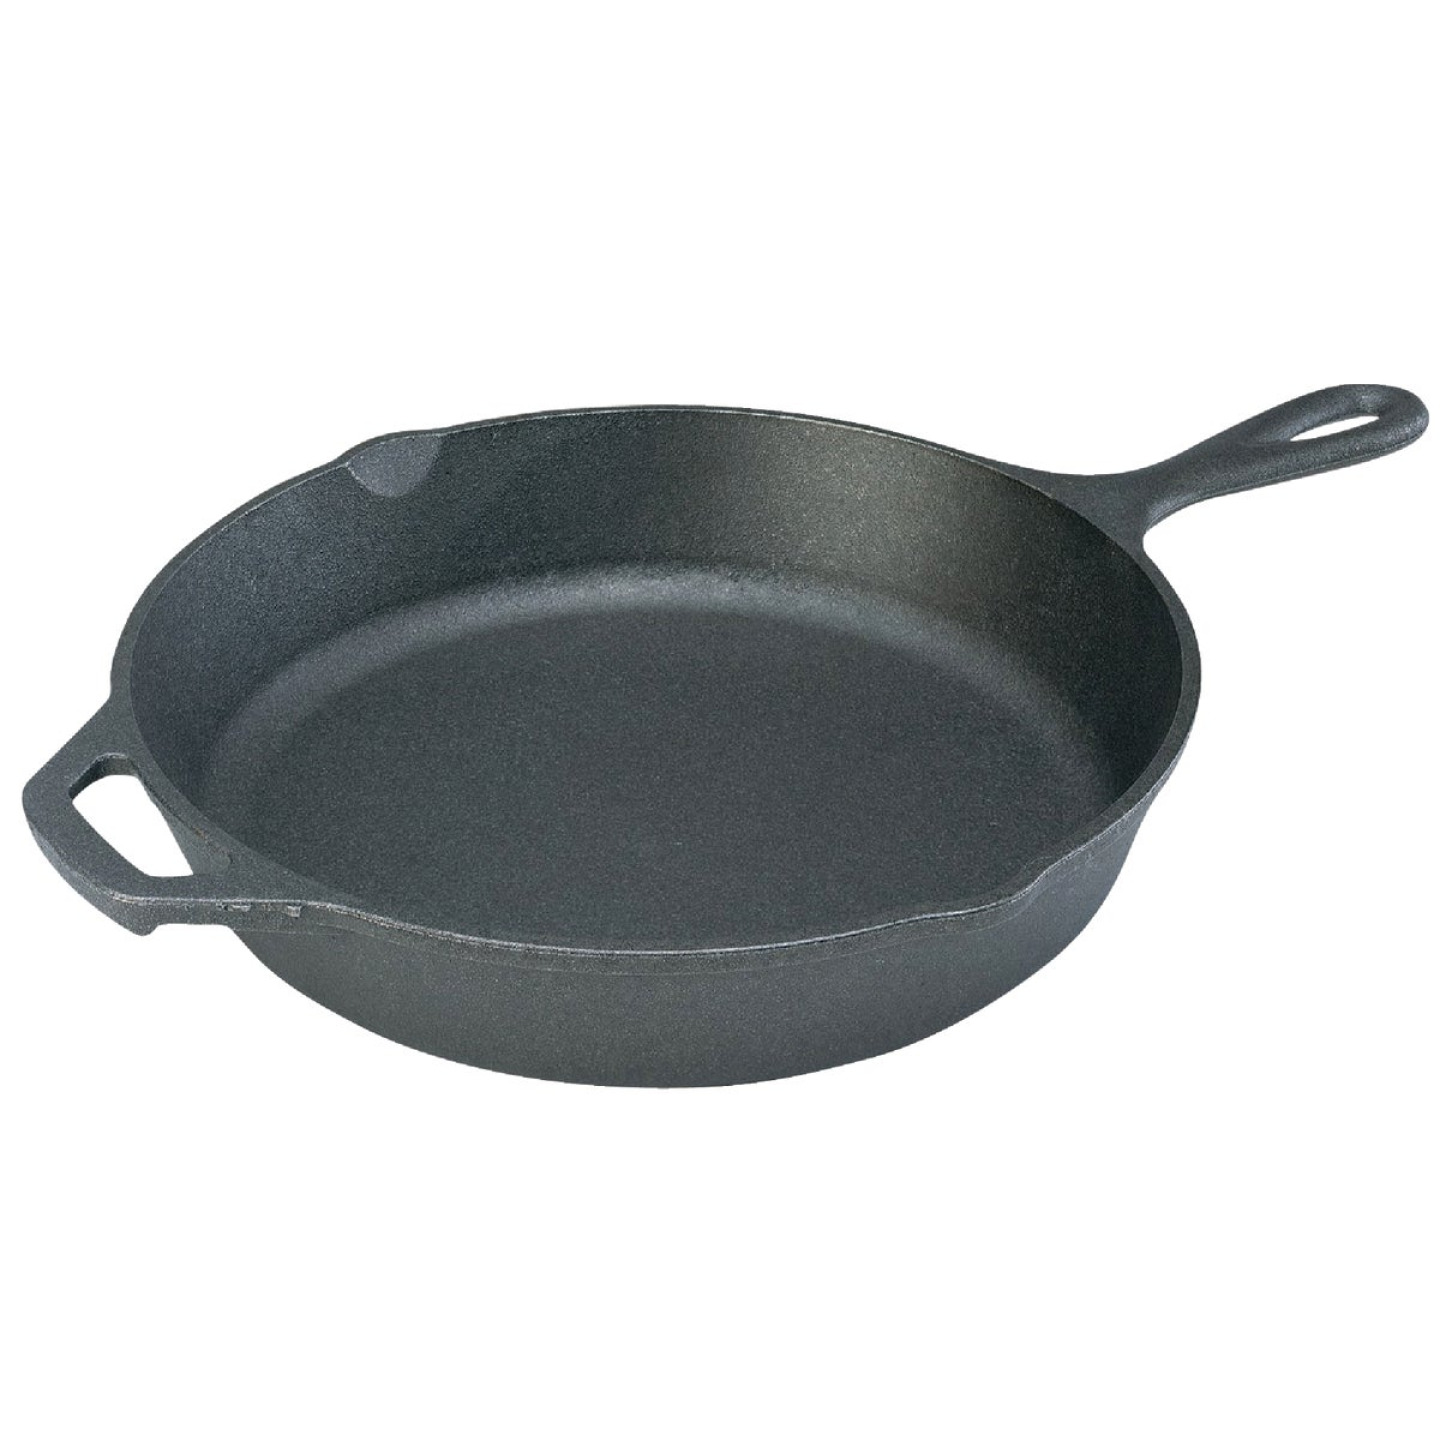 Lodge 10-1/4 In. Cast Iron Skillet with Assist Handle Image 1